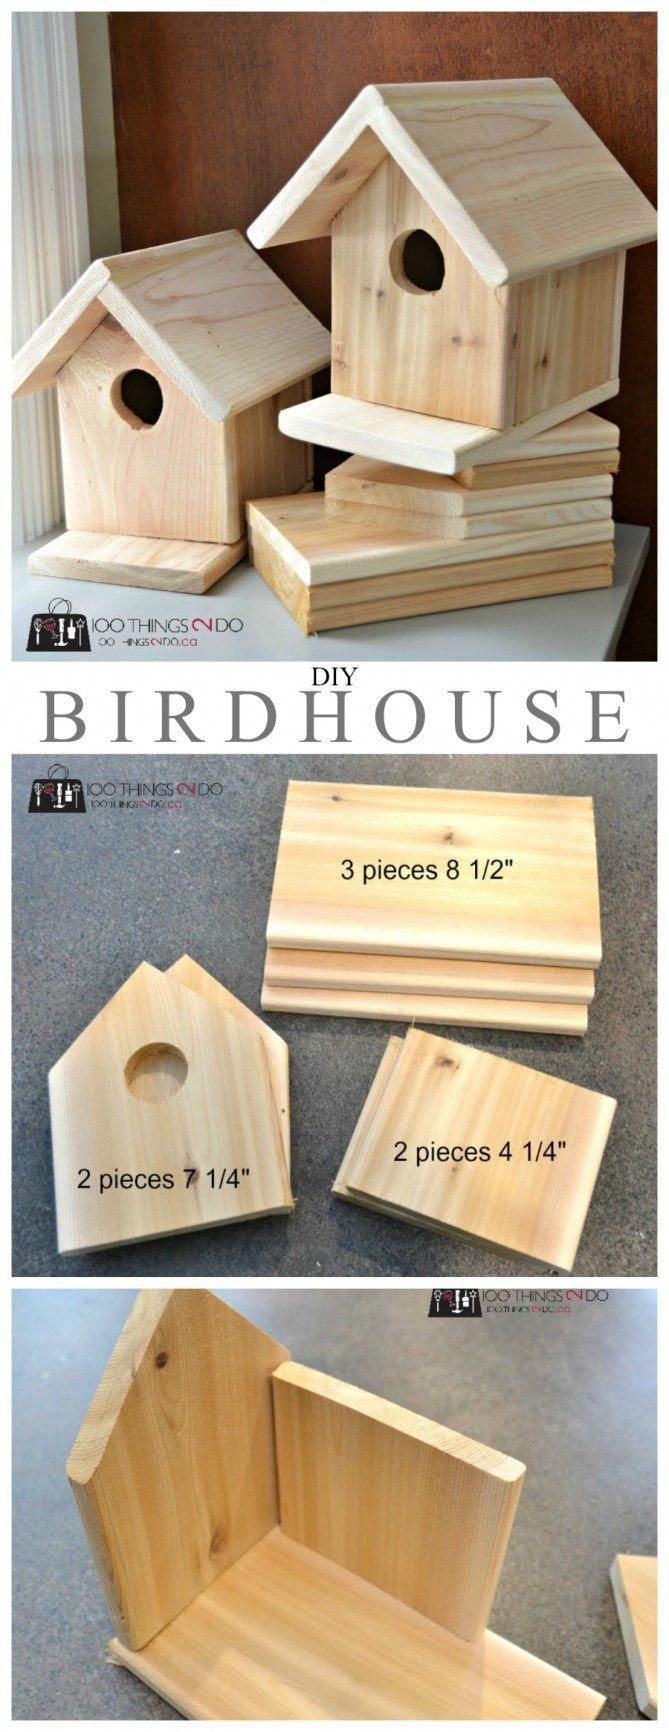 DIY Birdhouse -   19 diy Wood kids ideas